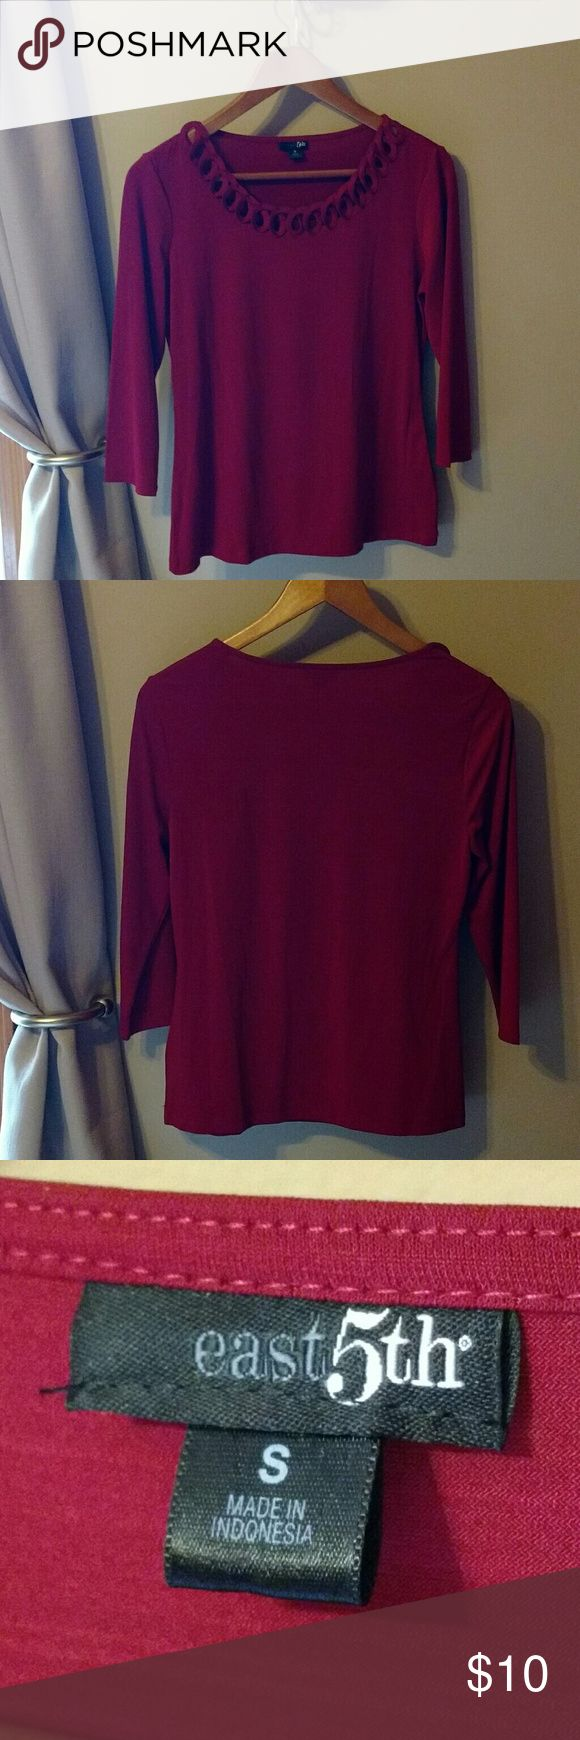 Burgundy dress shirt Never worn very cute shirt, stretchy polyester/spandex.  Cute cut-hole detail. East 5th Tops Blouses